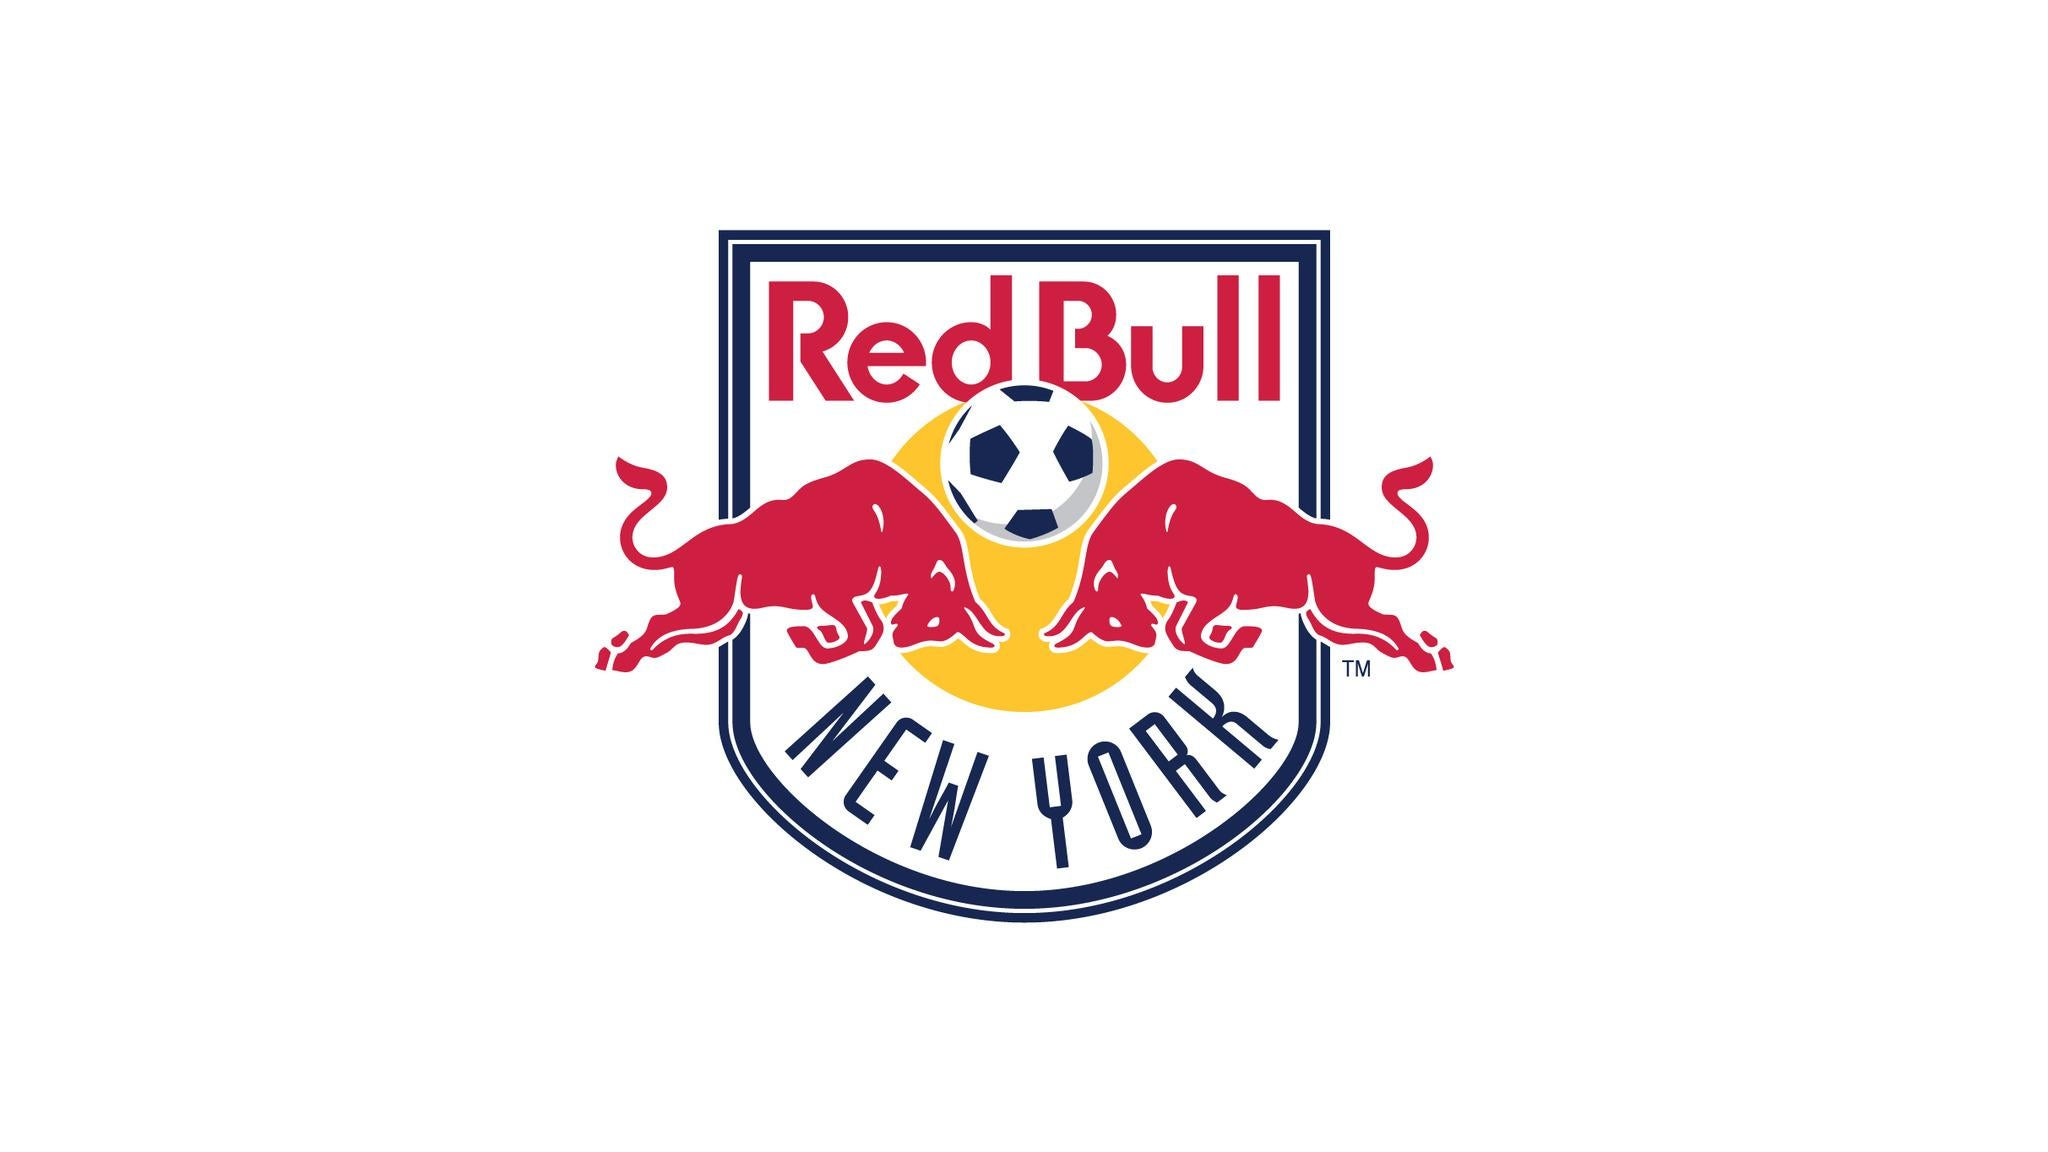 New York Red Bulls vs. Chicago Fire at Red Bull Arena